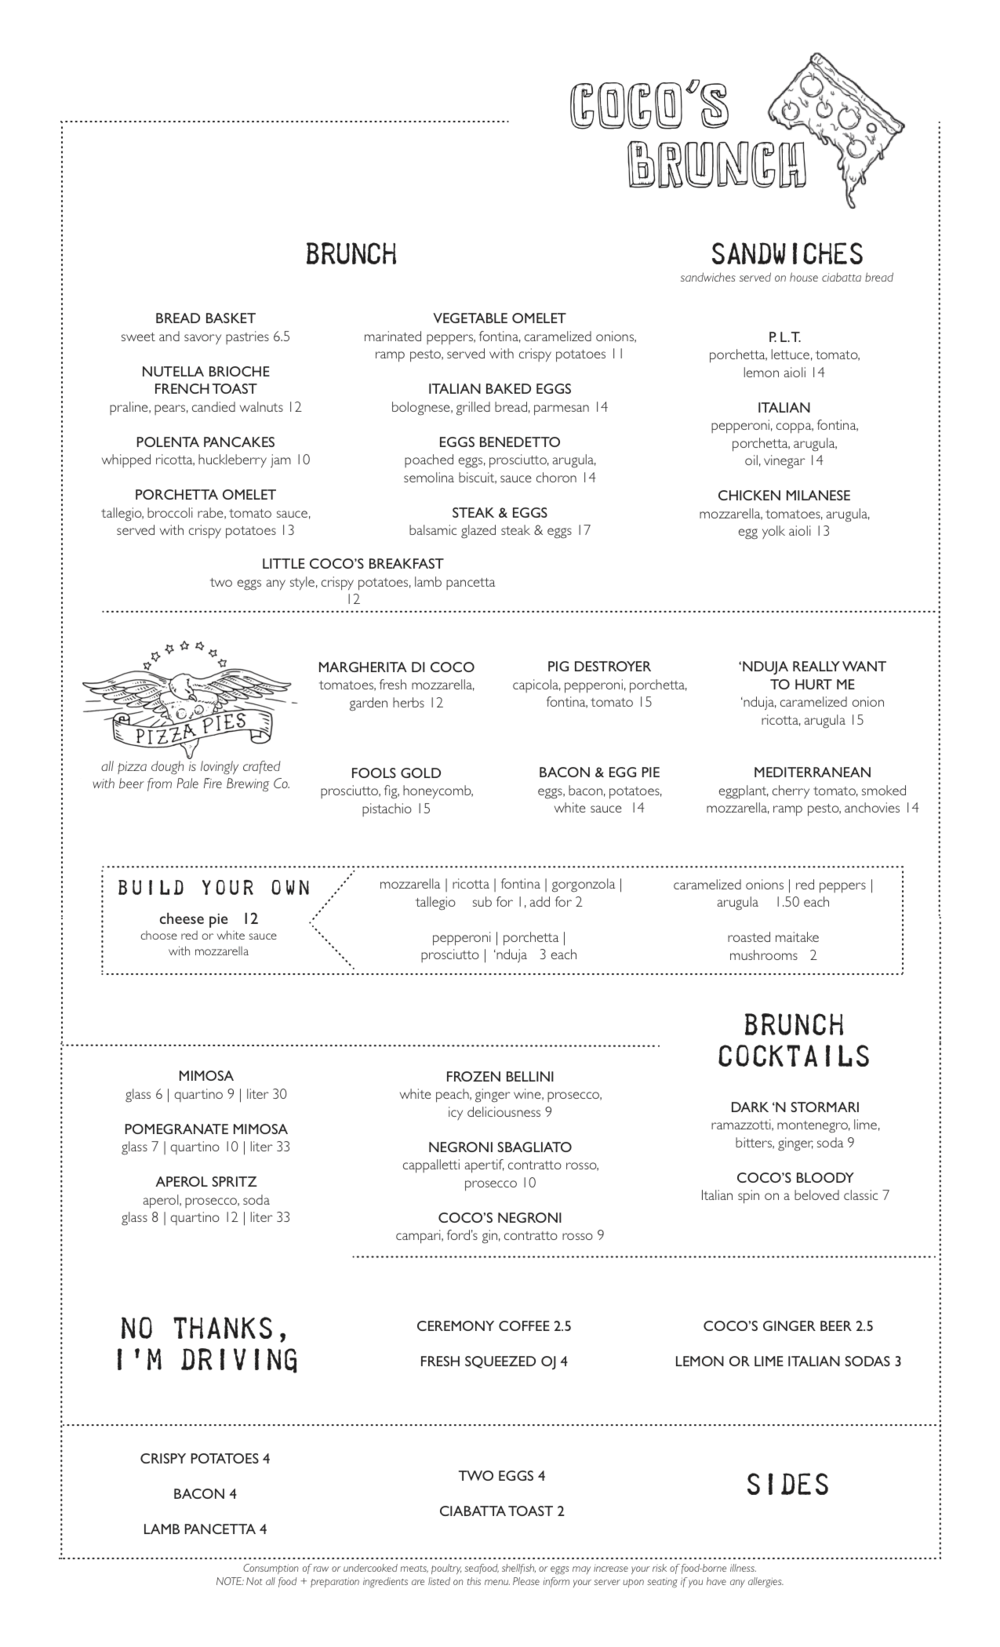 6_Little Coco's_brunch_menu_10.16.png